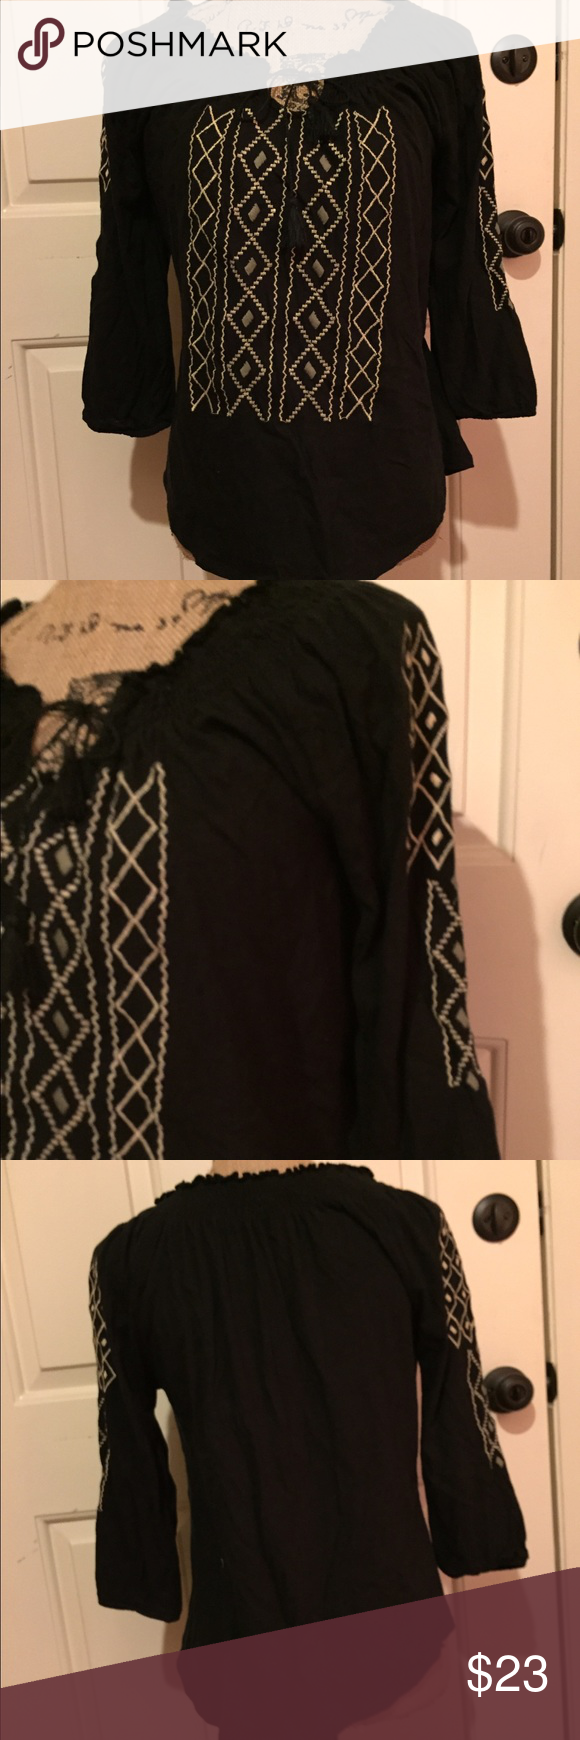 🆕 Lucky Brand boho blouse This is super cute! Keyhole loop in front. Super comfy. 👺NO TRADES DONT ASK! ✌🏼️Transactions through posh only!  😻 friendly home 💃🏼 if you ask a question about an item, please be ready to purchase (serious buyers only) ❤️Color may vary in person! 💗⭐️Bundles of 5+ LISTINGS are 5️⃣0️⃣% off! ⭐️buyer pays extra shipping if likely to be over 5 lbs 🙋thanks for looking! Lucky Brand Tops Blouses